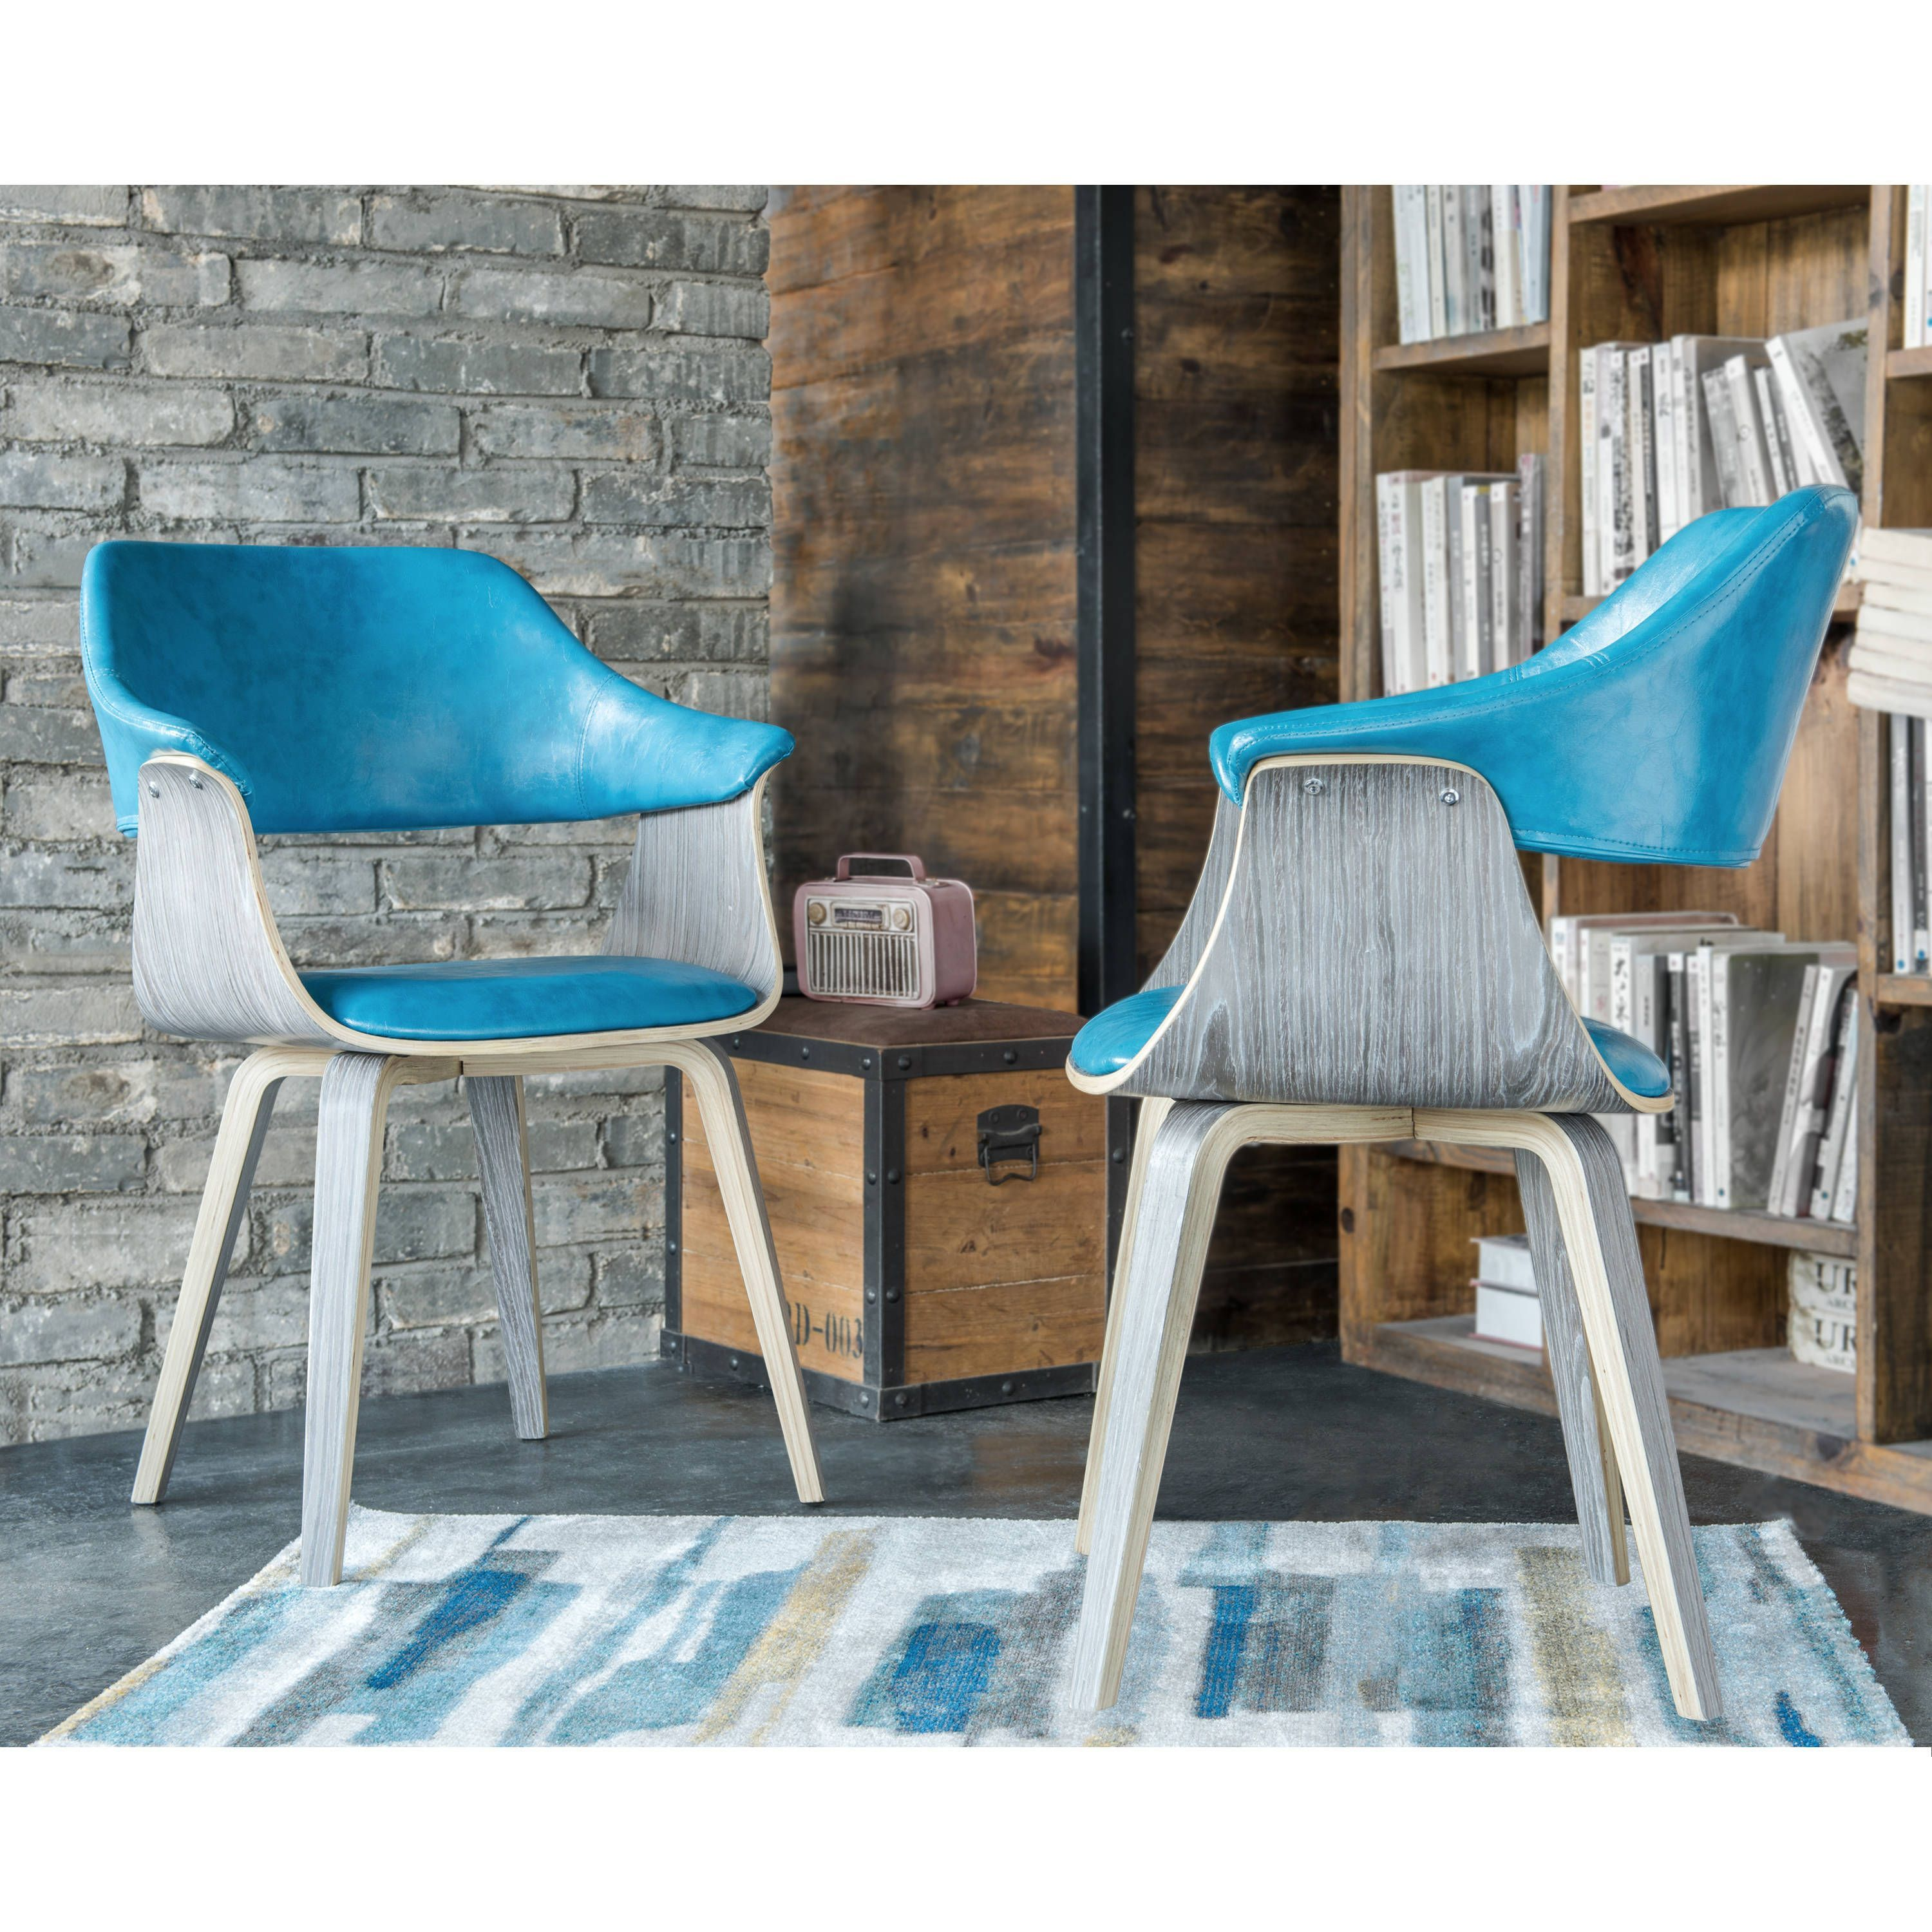 Best Corvus Norah Mid Century Modern Accent Chairs With Wood 400 x 300